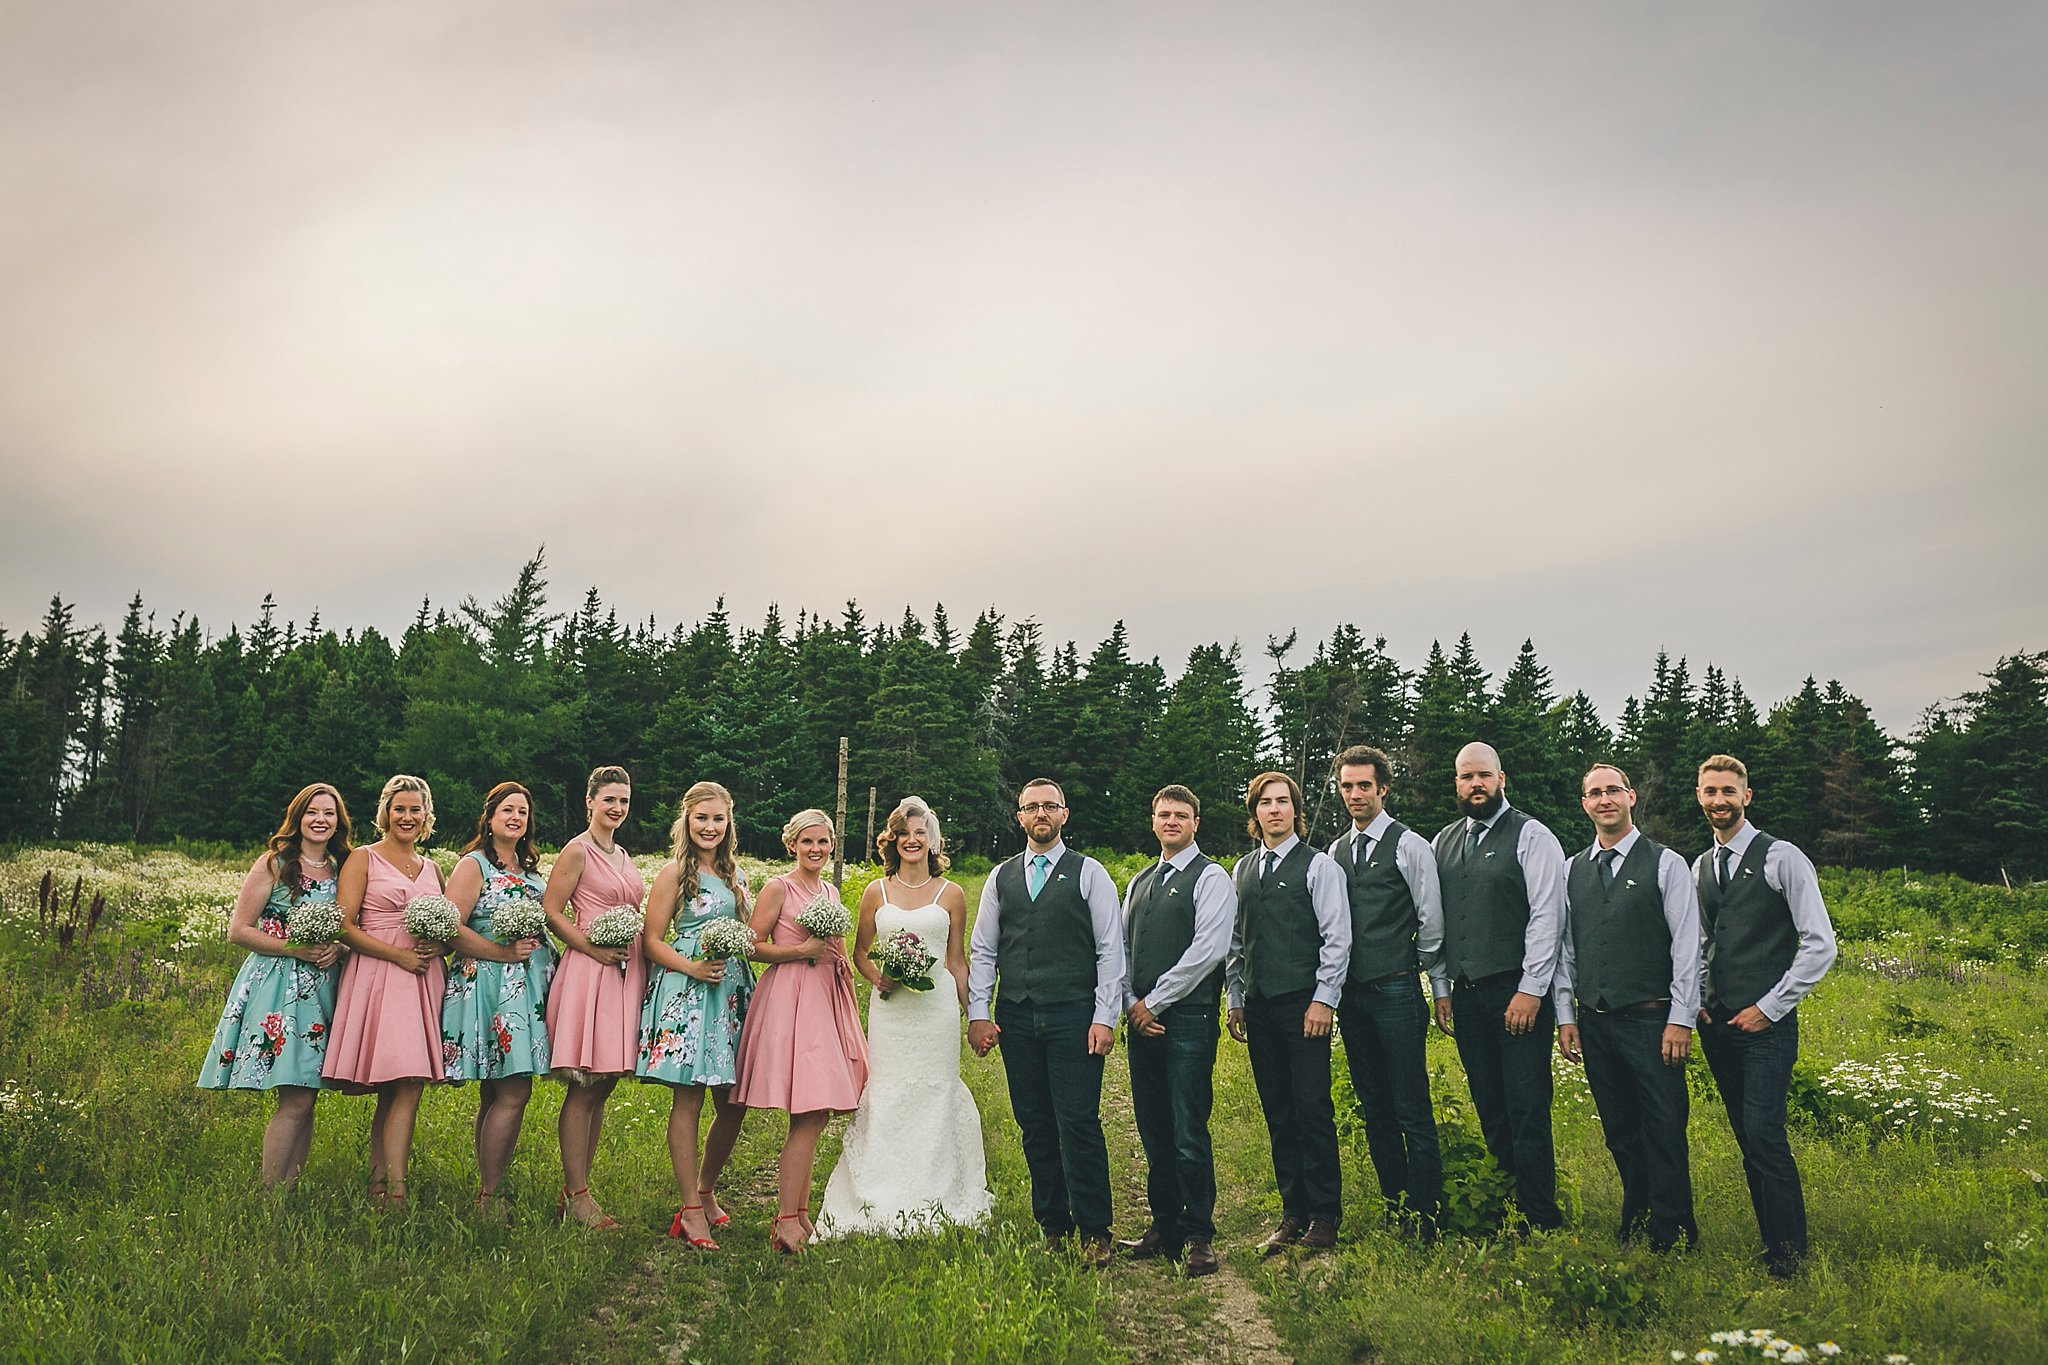 Wedding party photographs during a St. John's, Newfoundland wedding held at Lester's Farm